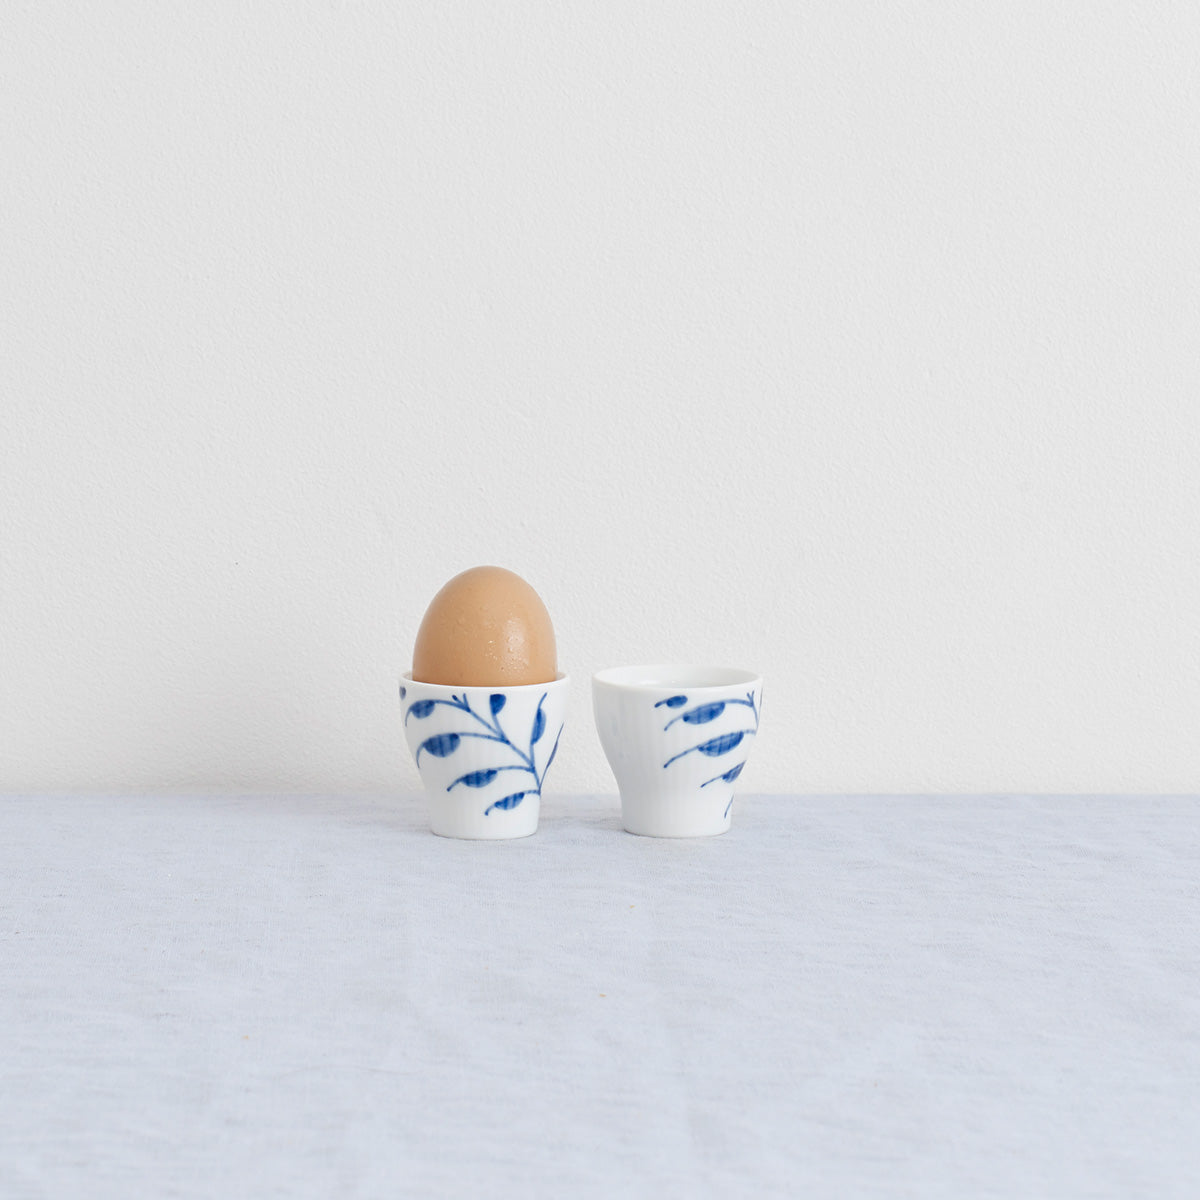 Royal Copenhagen Bluted Mega Egg Cups - Danish Design - Royal Copenhagen - Porcelain - Butter Dish - Blue Fluted Mega Egg Cups